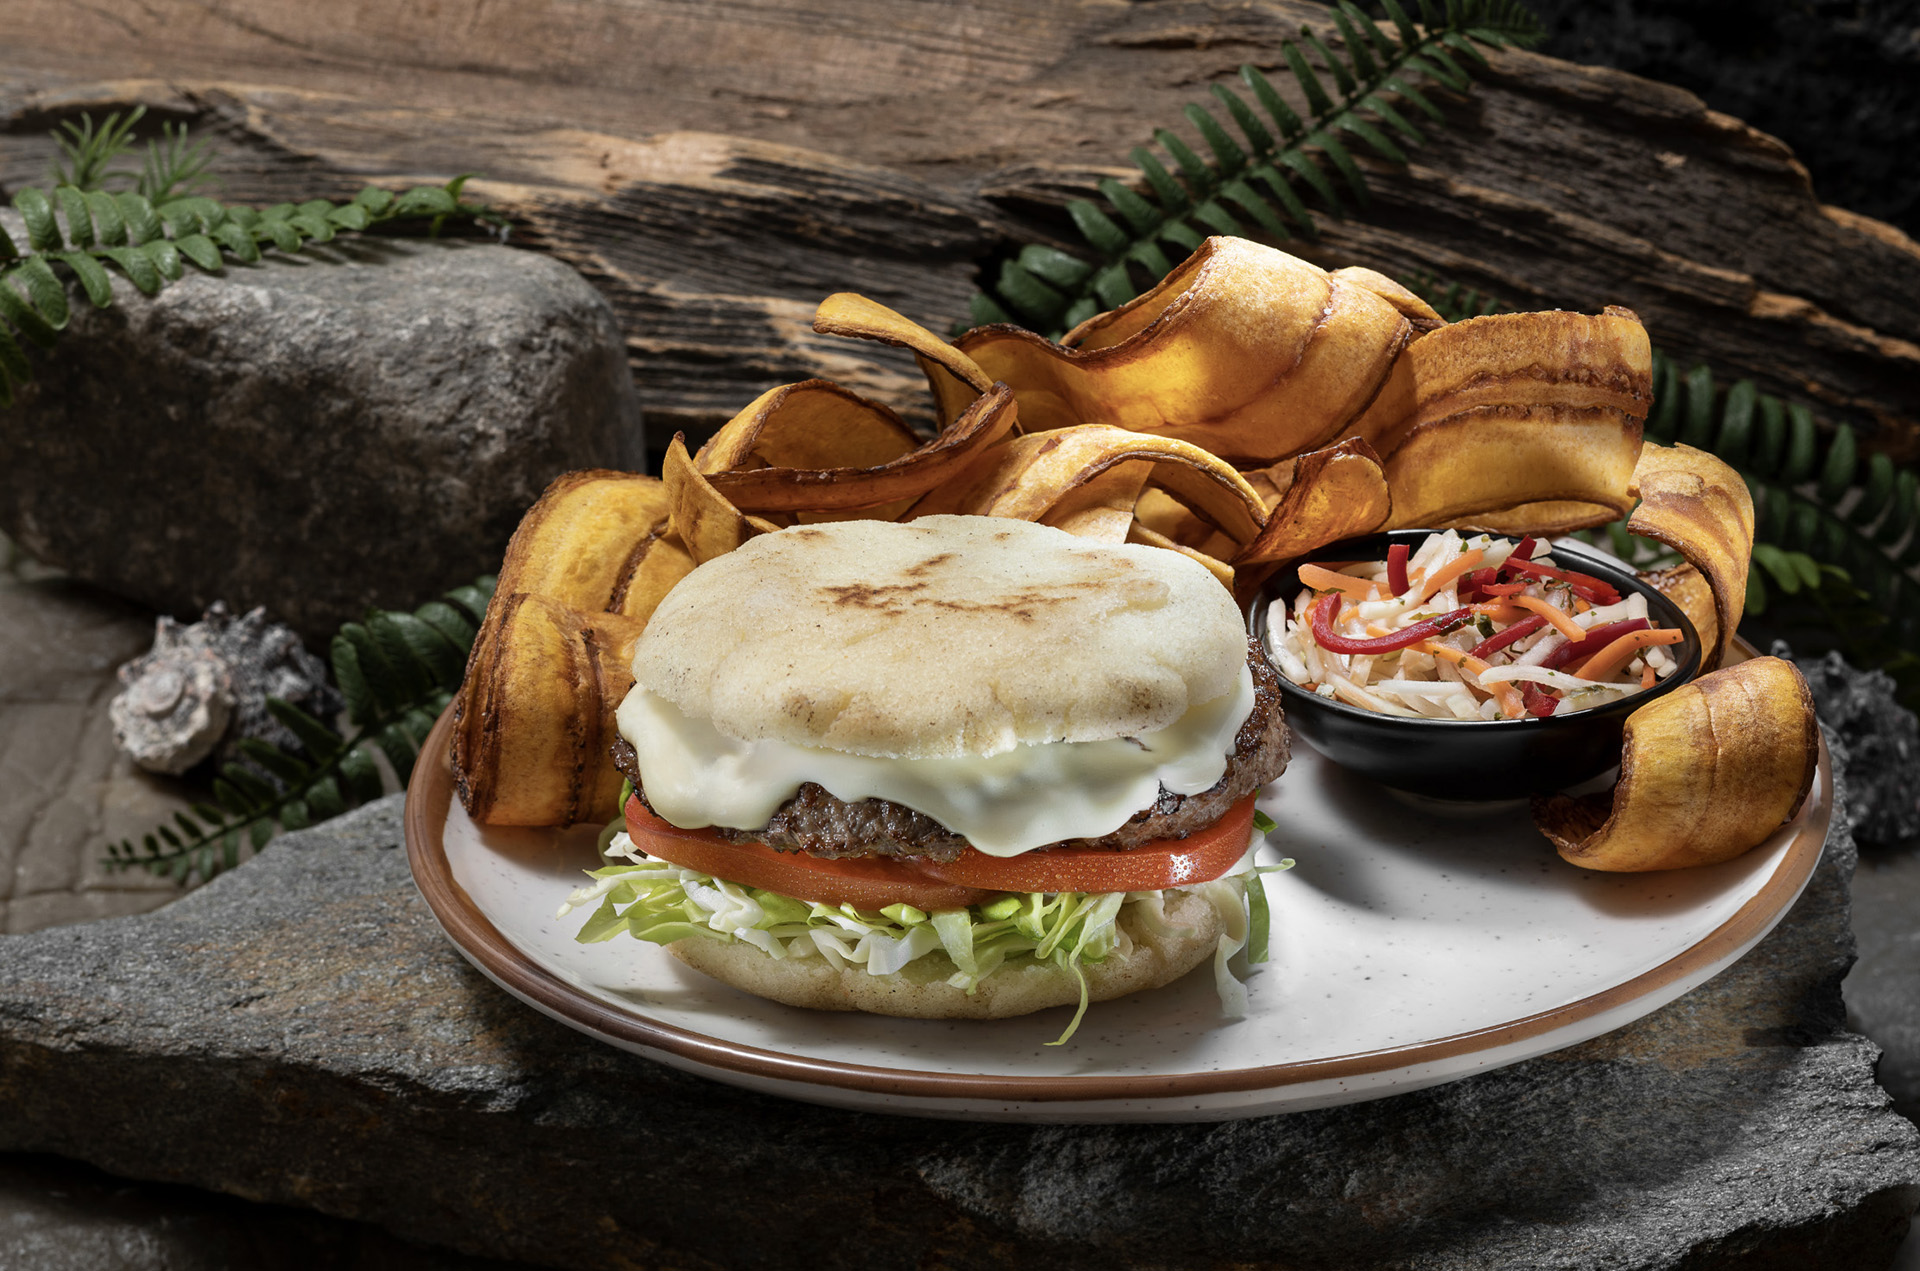 The redone Jurassic Cafe will feature an Isla Burger with slaw. (Photo courtesy of Universal Studios Hollywood.)